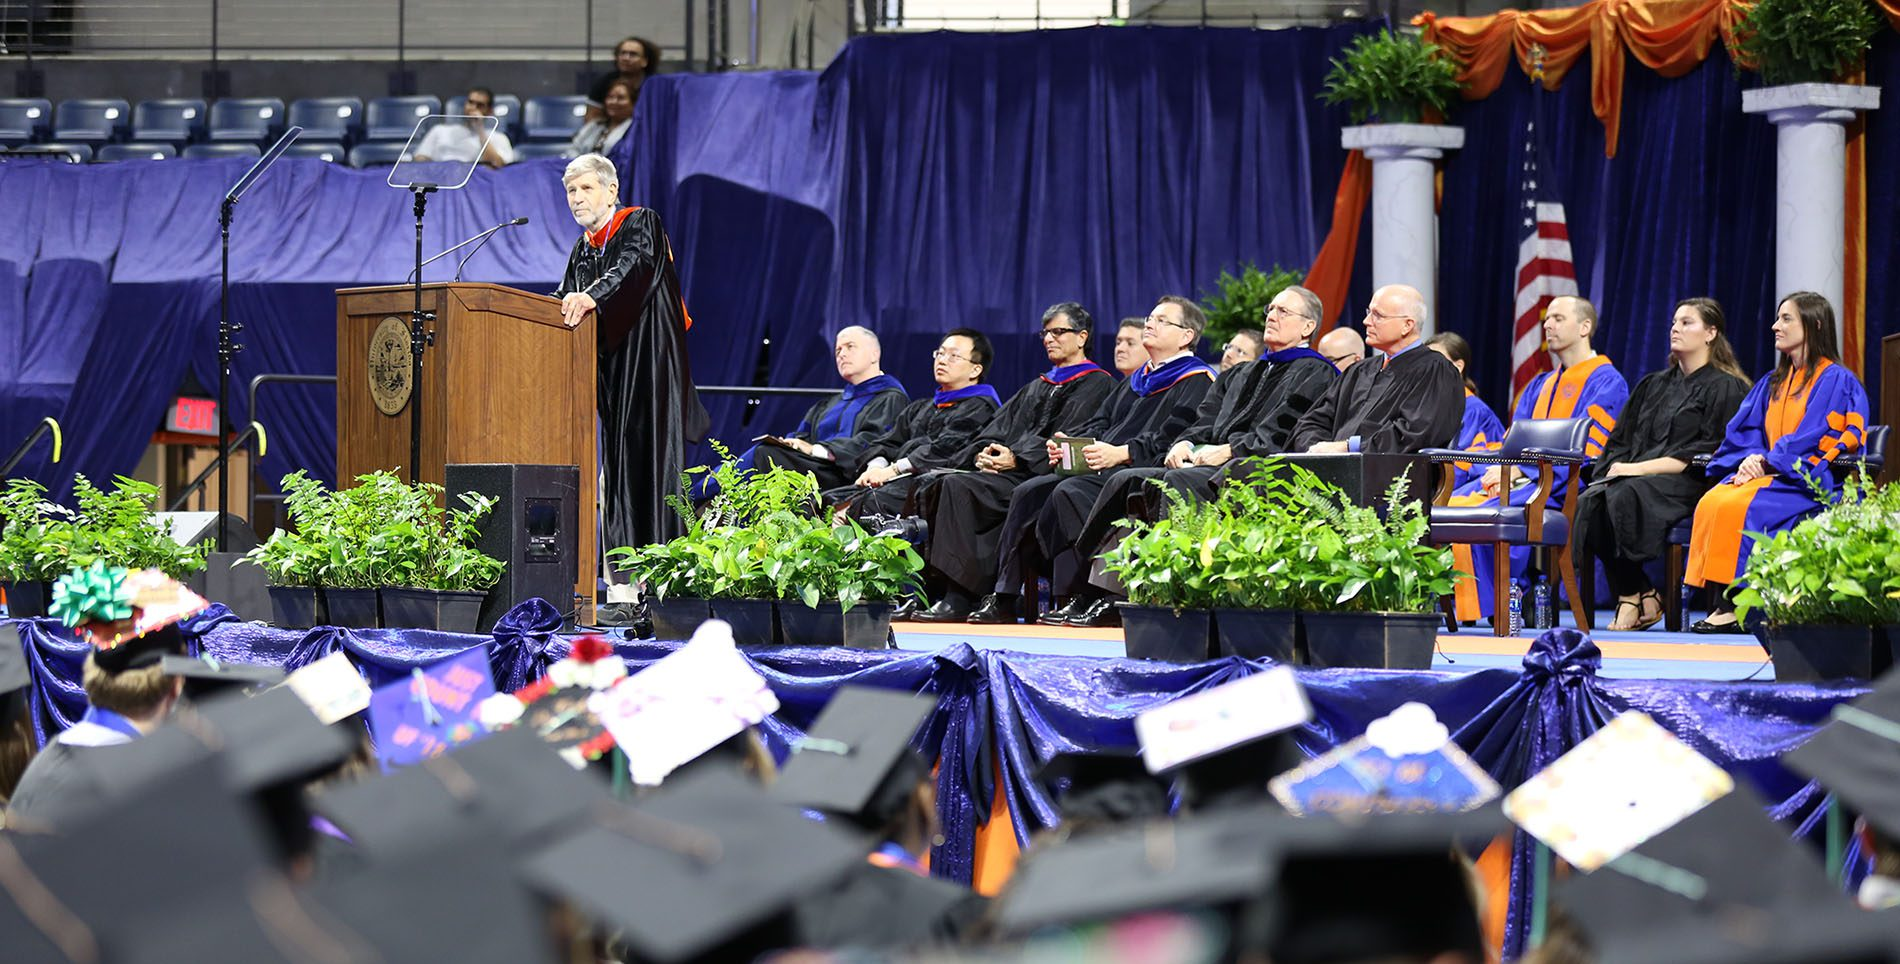 Nathan Collier Speaking at The University of Florida graduation ceremony